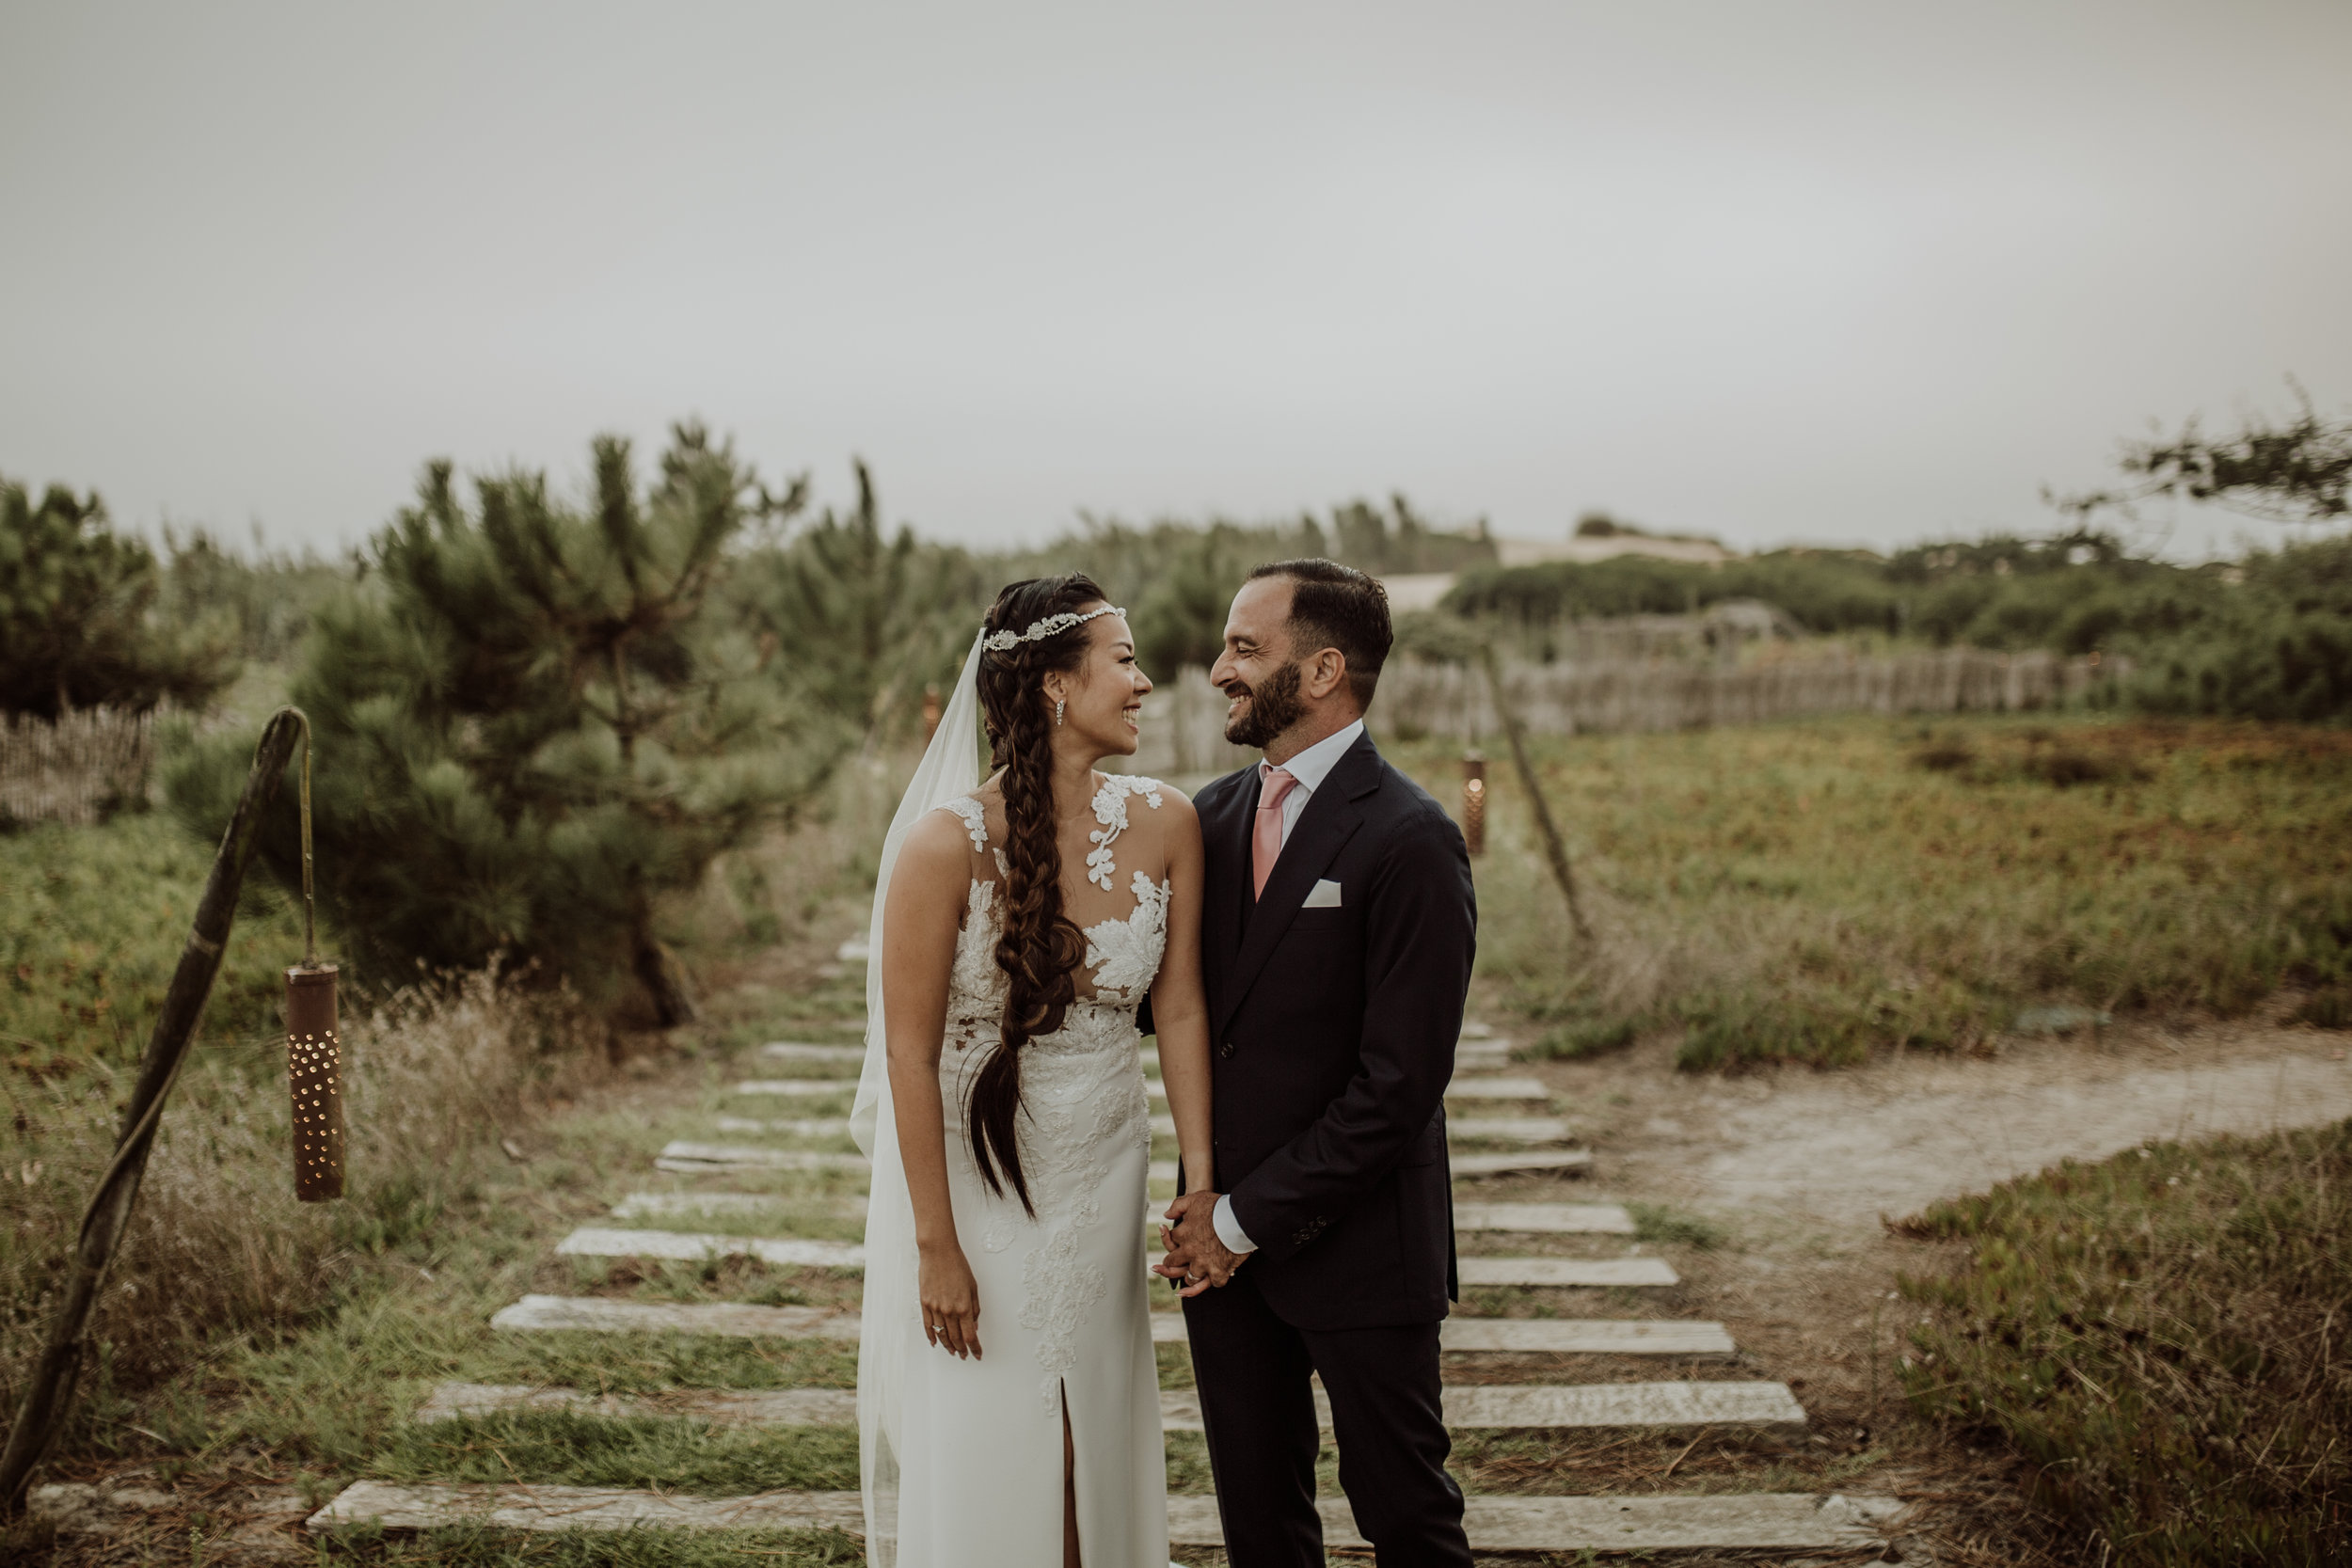 Y&M_953_15_September_2018WEDDING_DAY.jpg